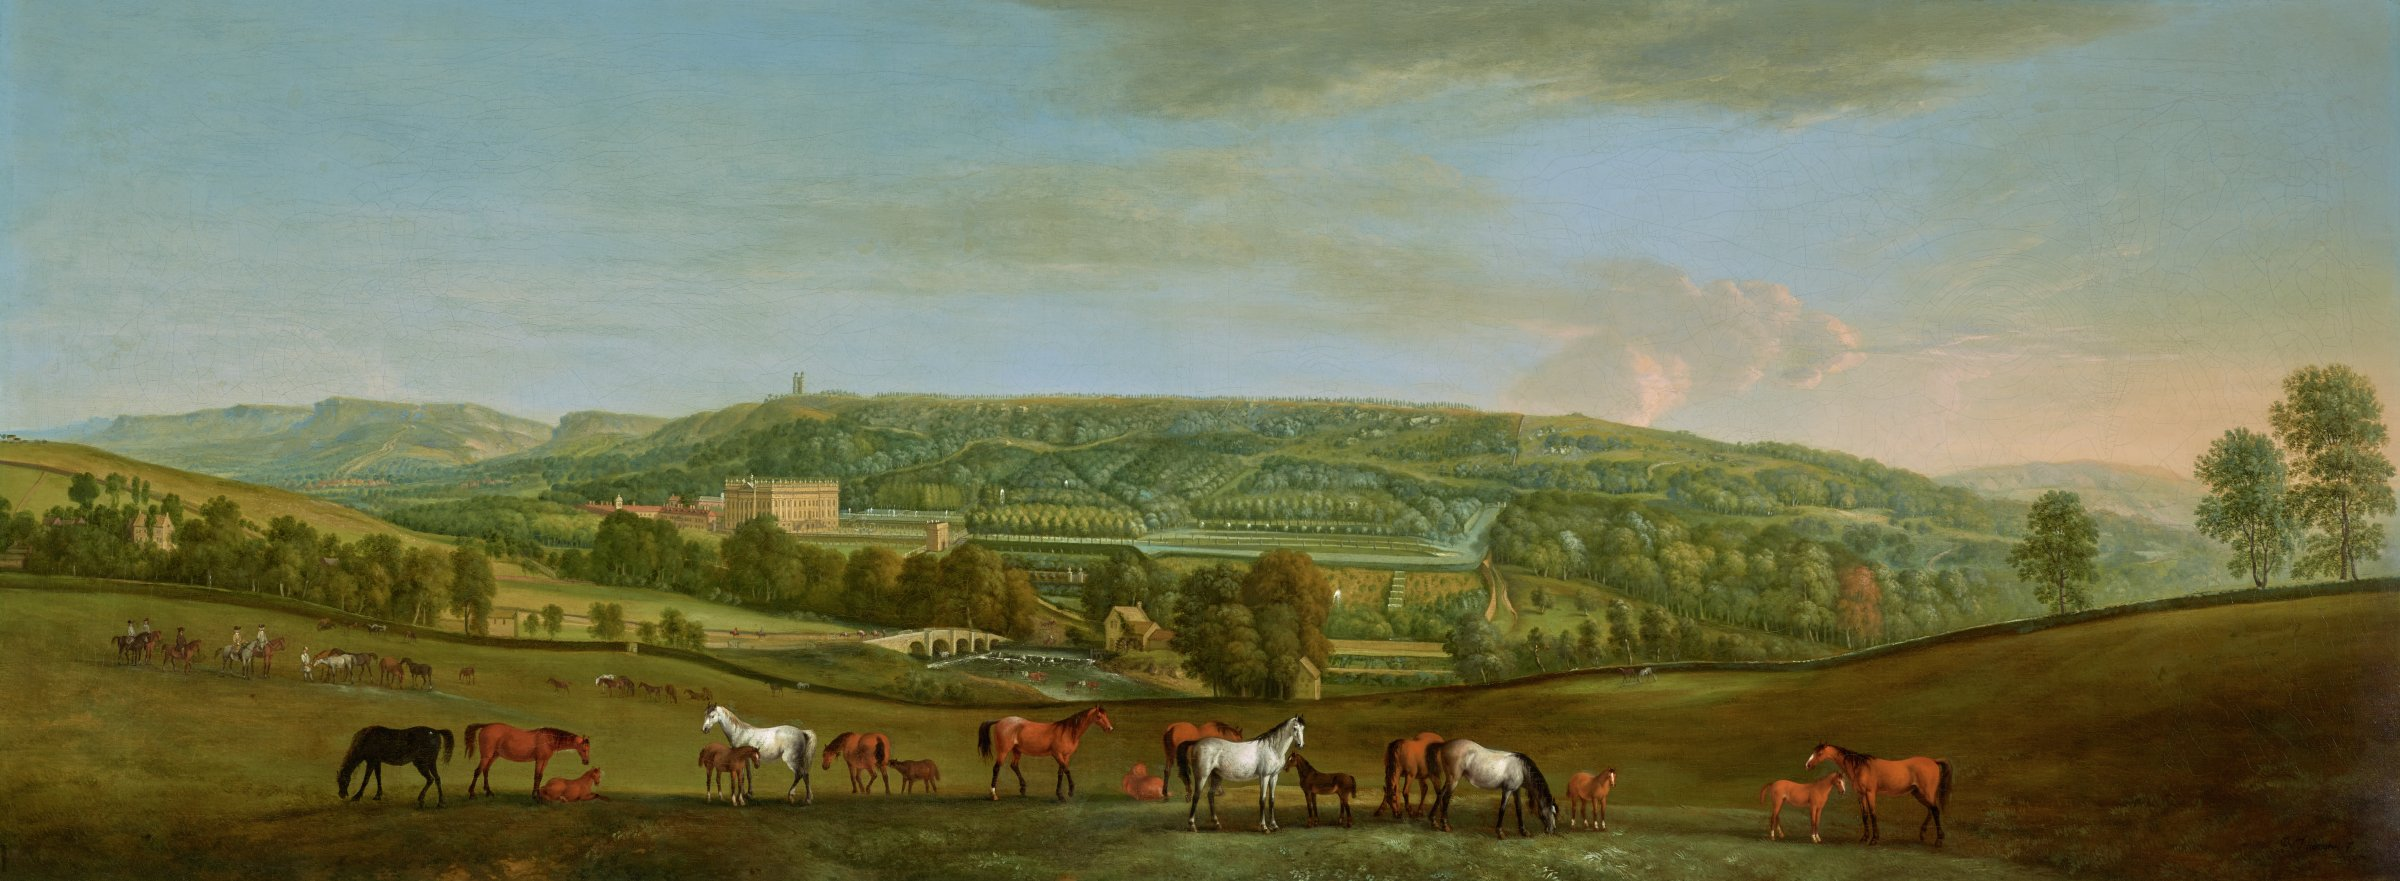 A vast landscape with Chatsworth House and its park in the middle ground. Various horses in the foreground.